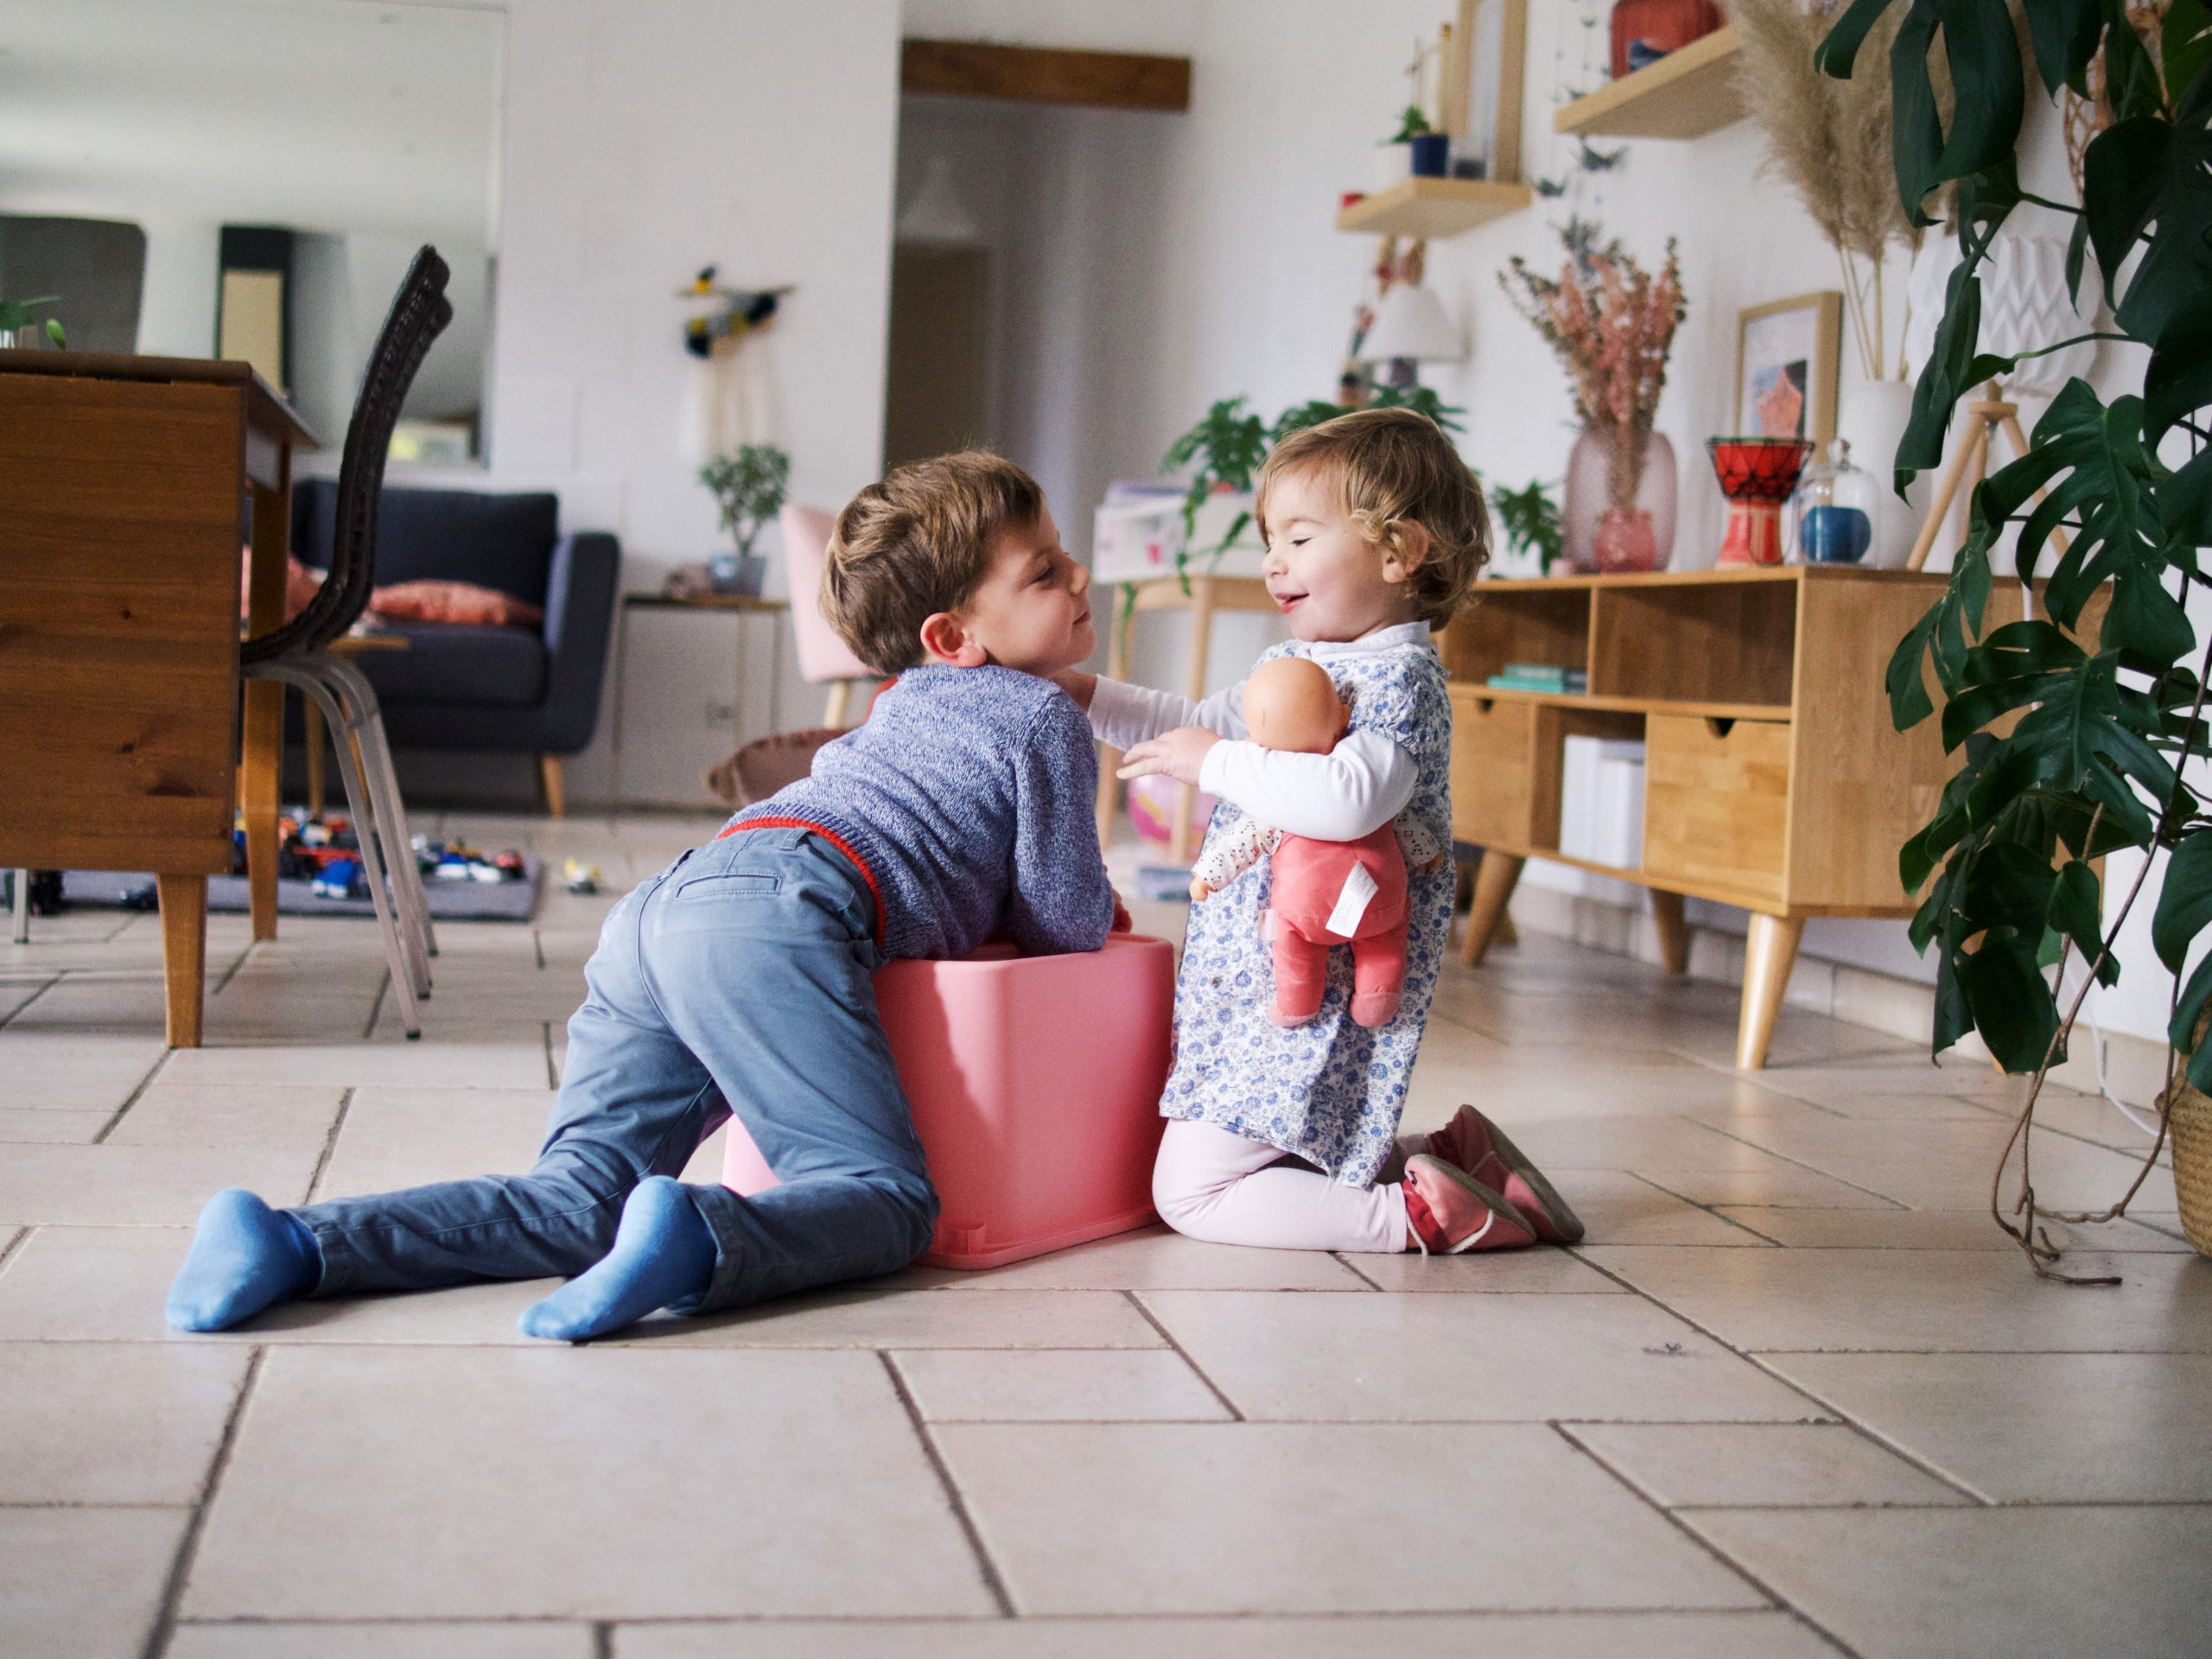 gérer son stress quand on est parent